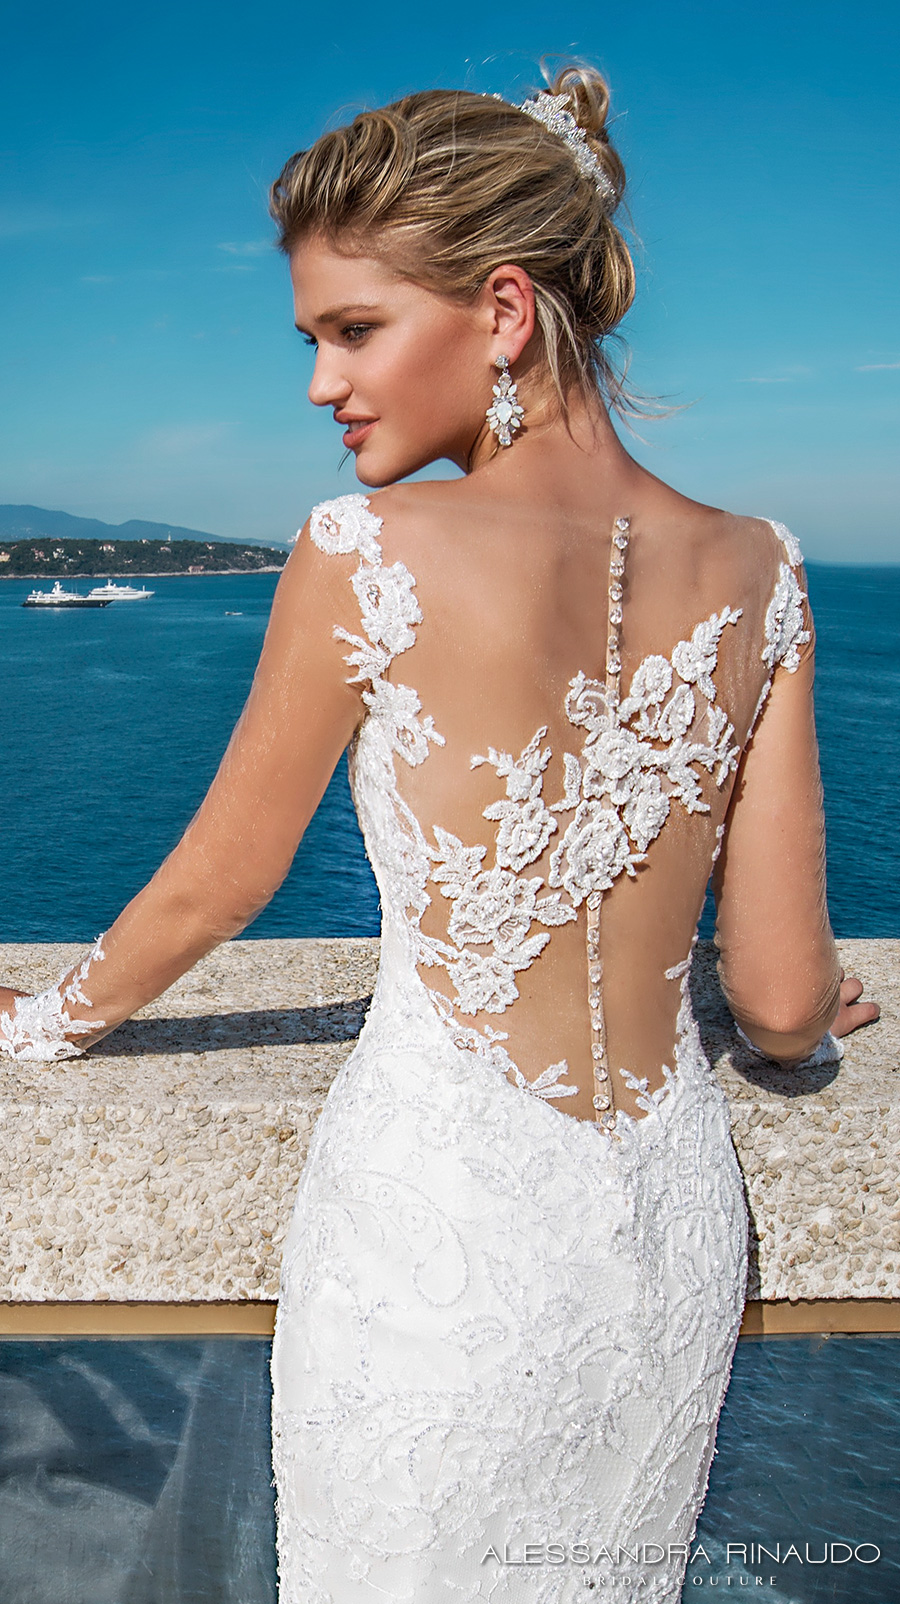 alessandra rinaudo 2017 bridal cap sleeves sweetheart neckline full embellishment elegant mermaid wedding dress illusion low back long train (berenice) zbv